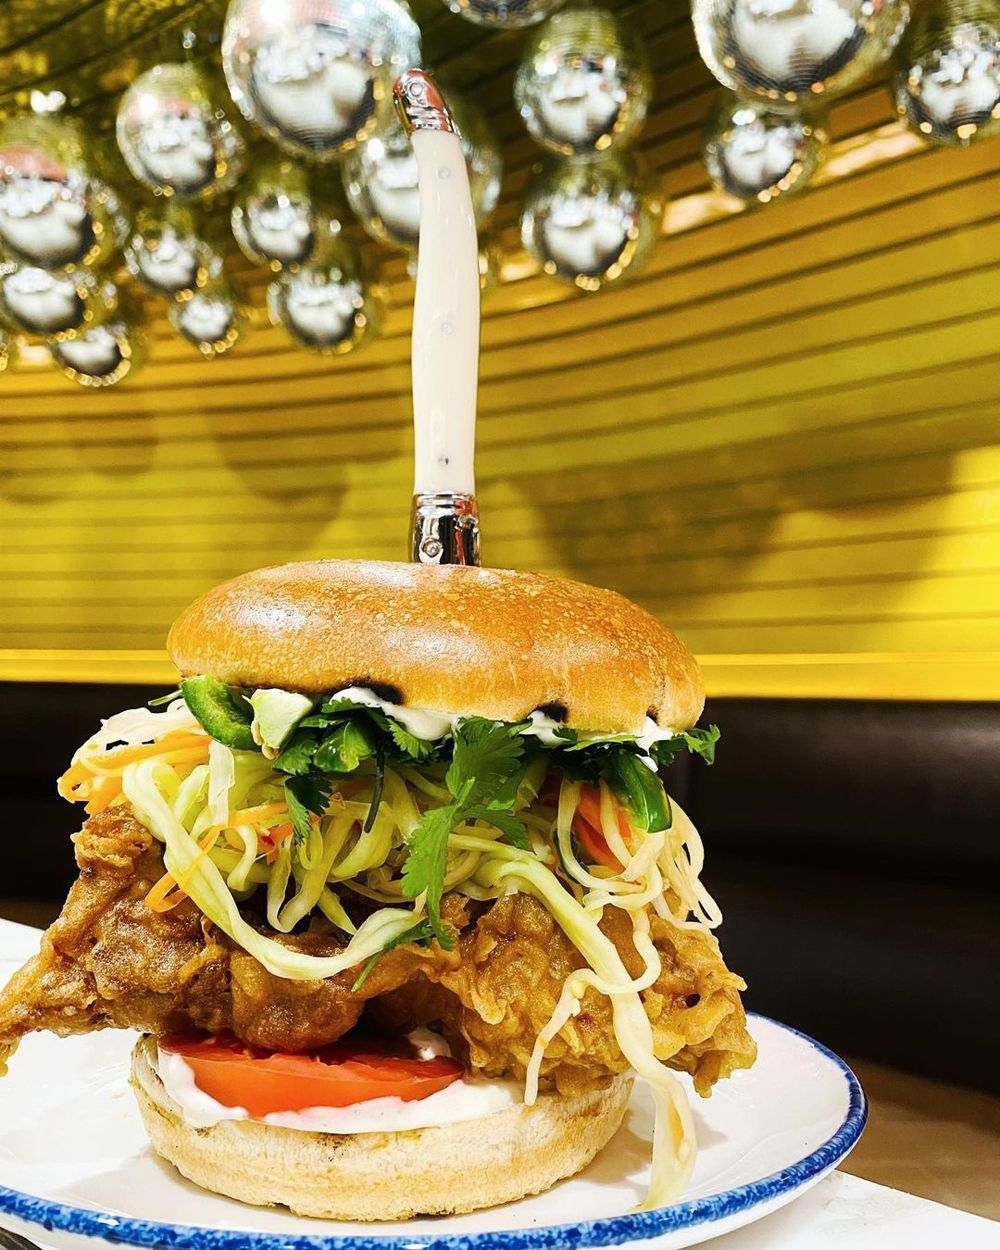 Fried chicken sandwich with a knife in the center